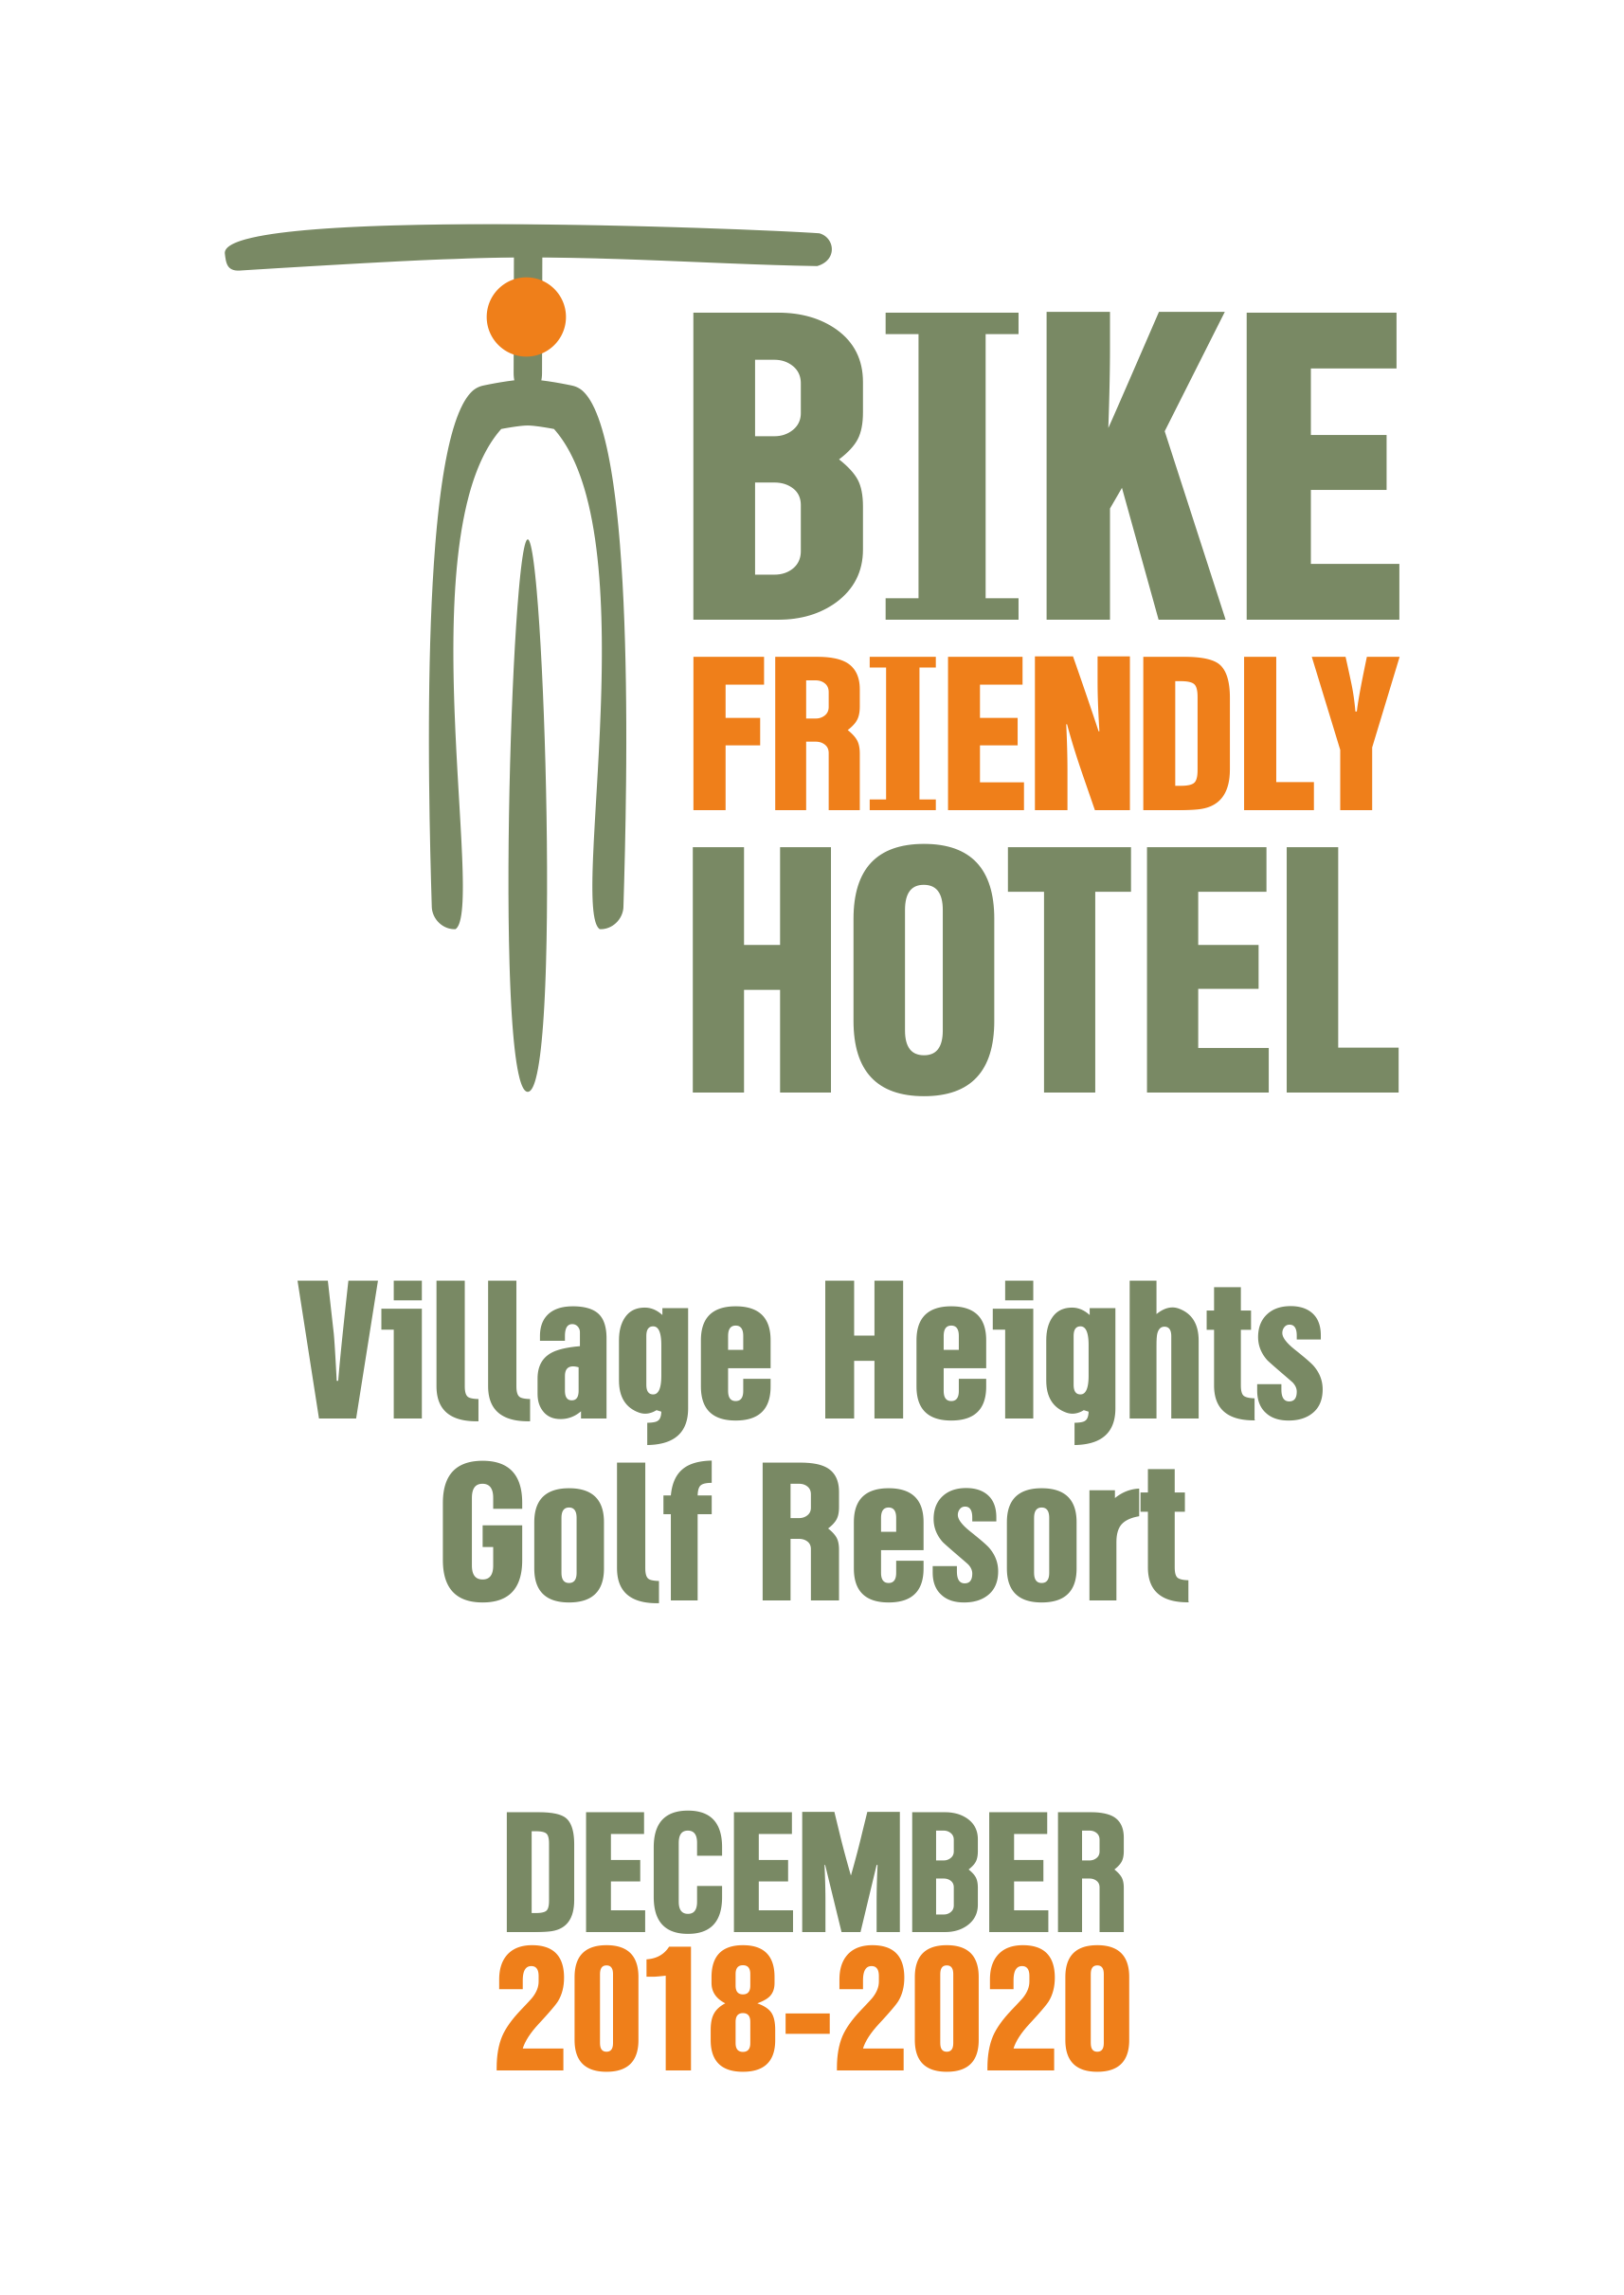 Village Heights Golf Resort Dec2018 2020